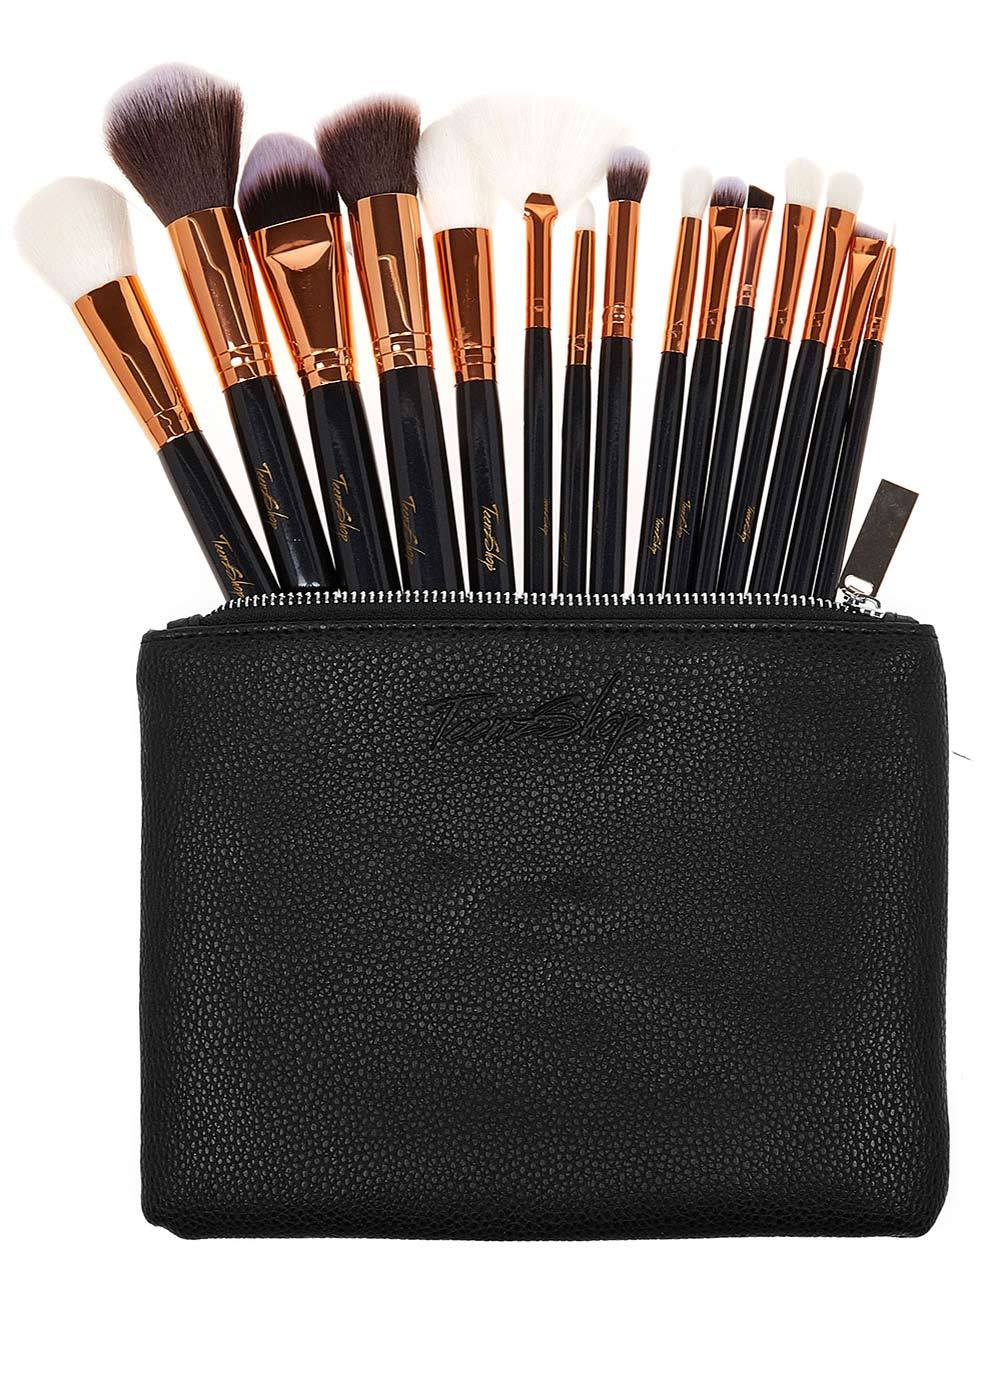 Black Make-up Brush Set and Bag - 1